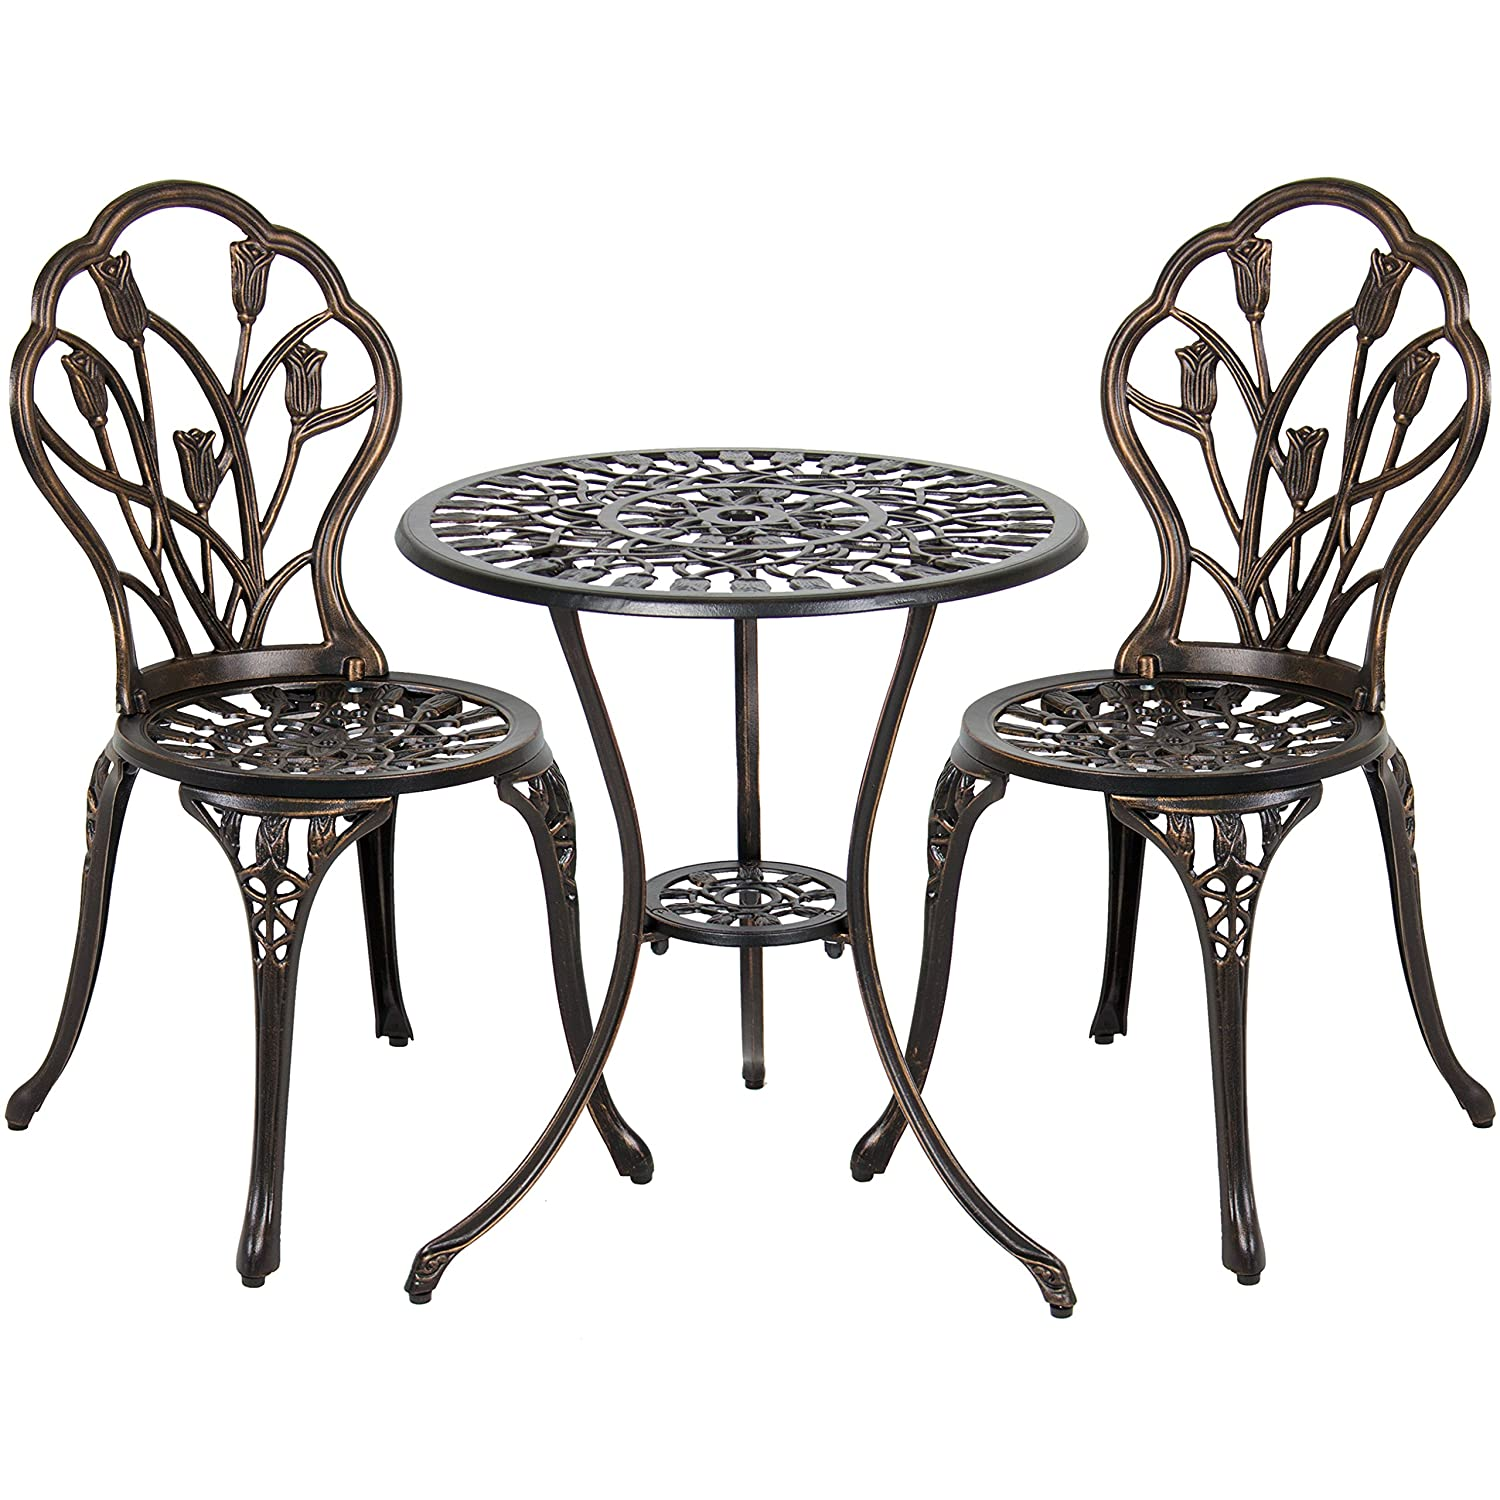 Amazon best choice products outdoor patio furniture tulip amazon best choice products outdoor patio furniture tulip design cast aluminum 3 piece bistro set in antique copper garden outdoor watchthetrailerfo